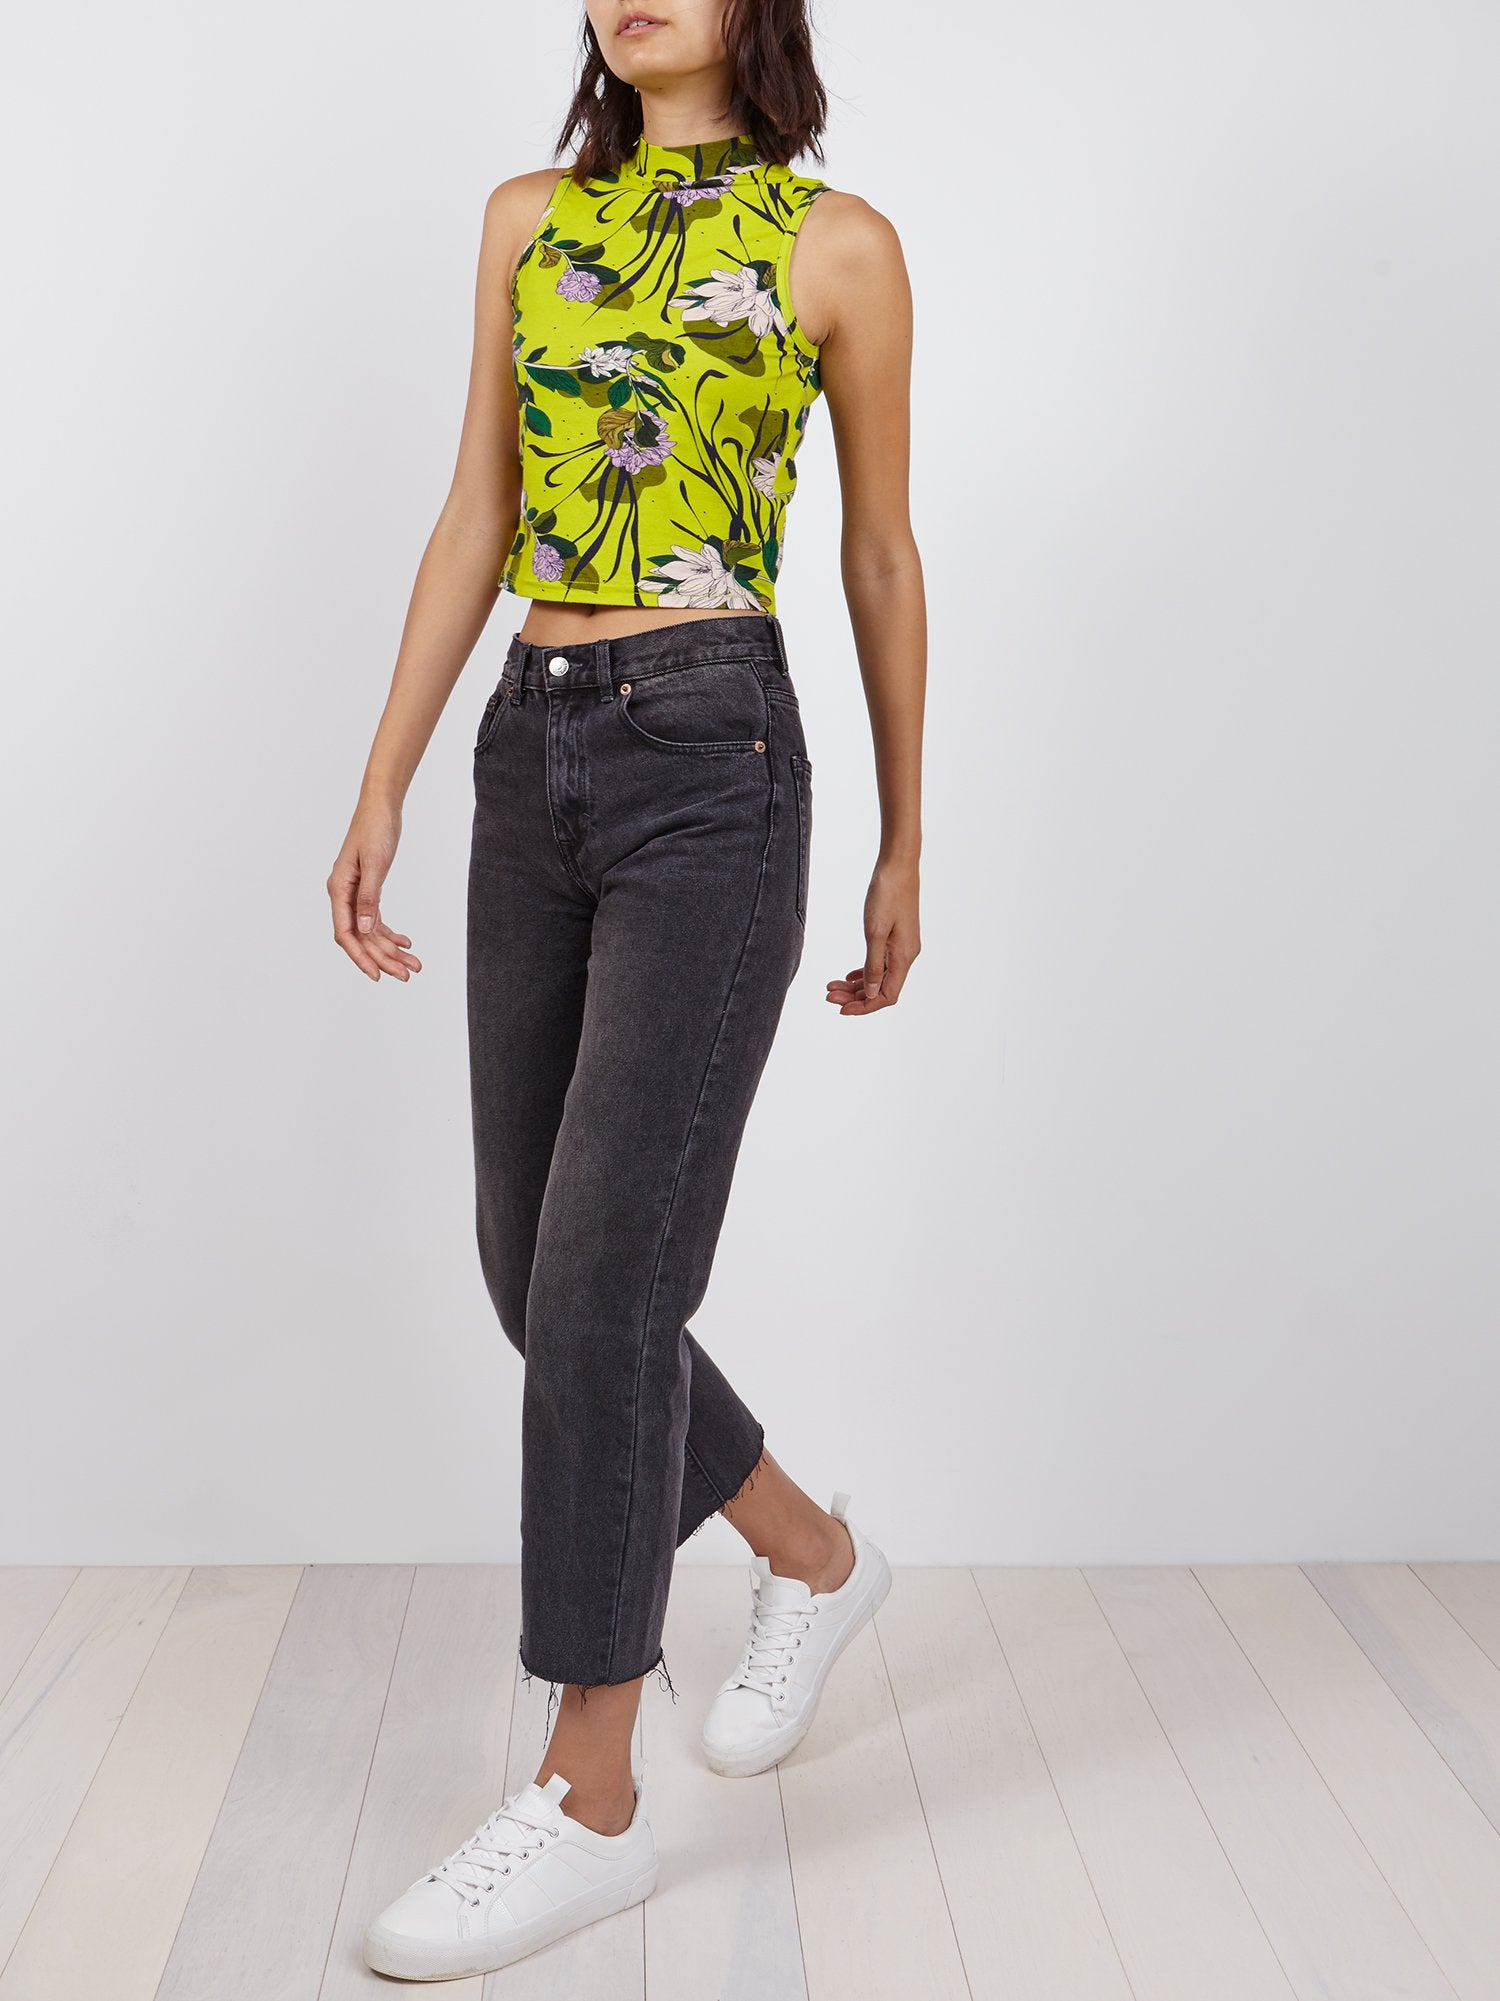 Cropped Mock Turtleneck | Lime Beach Floral